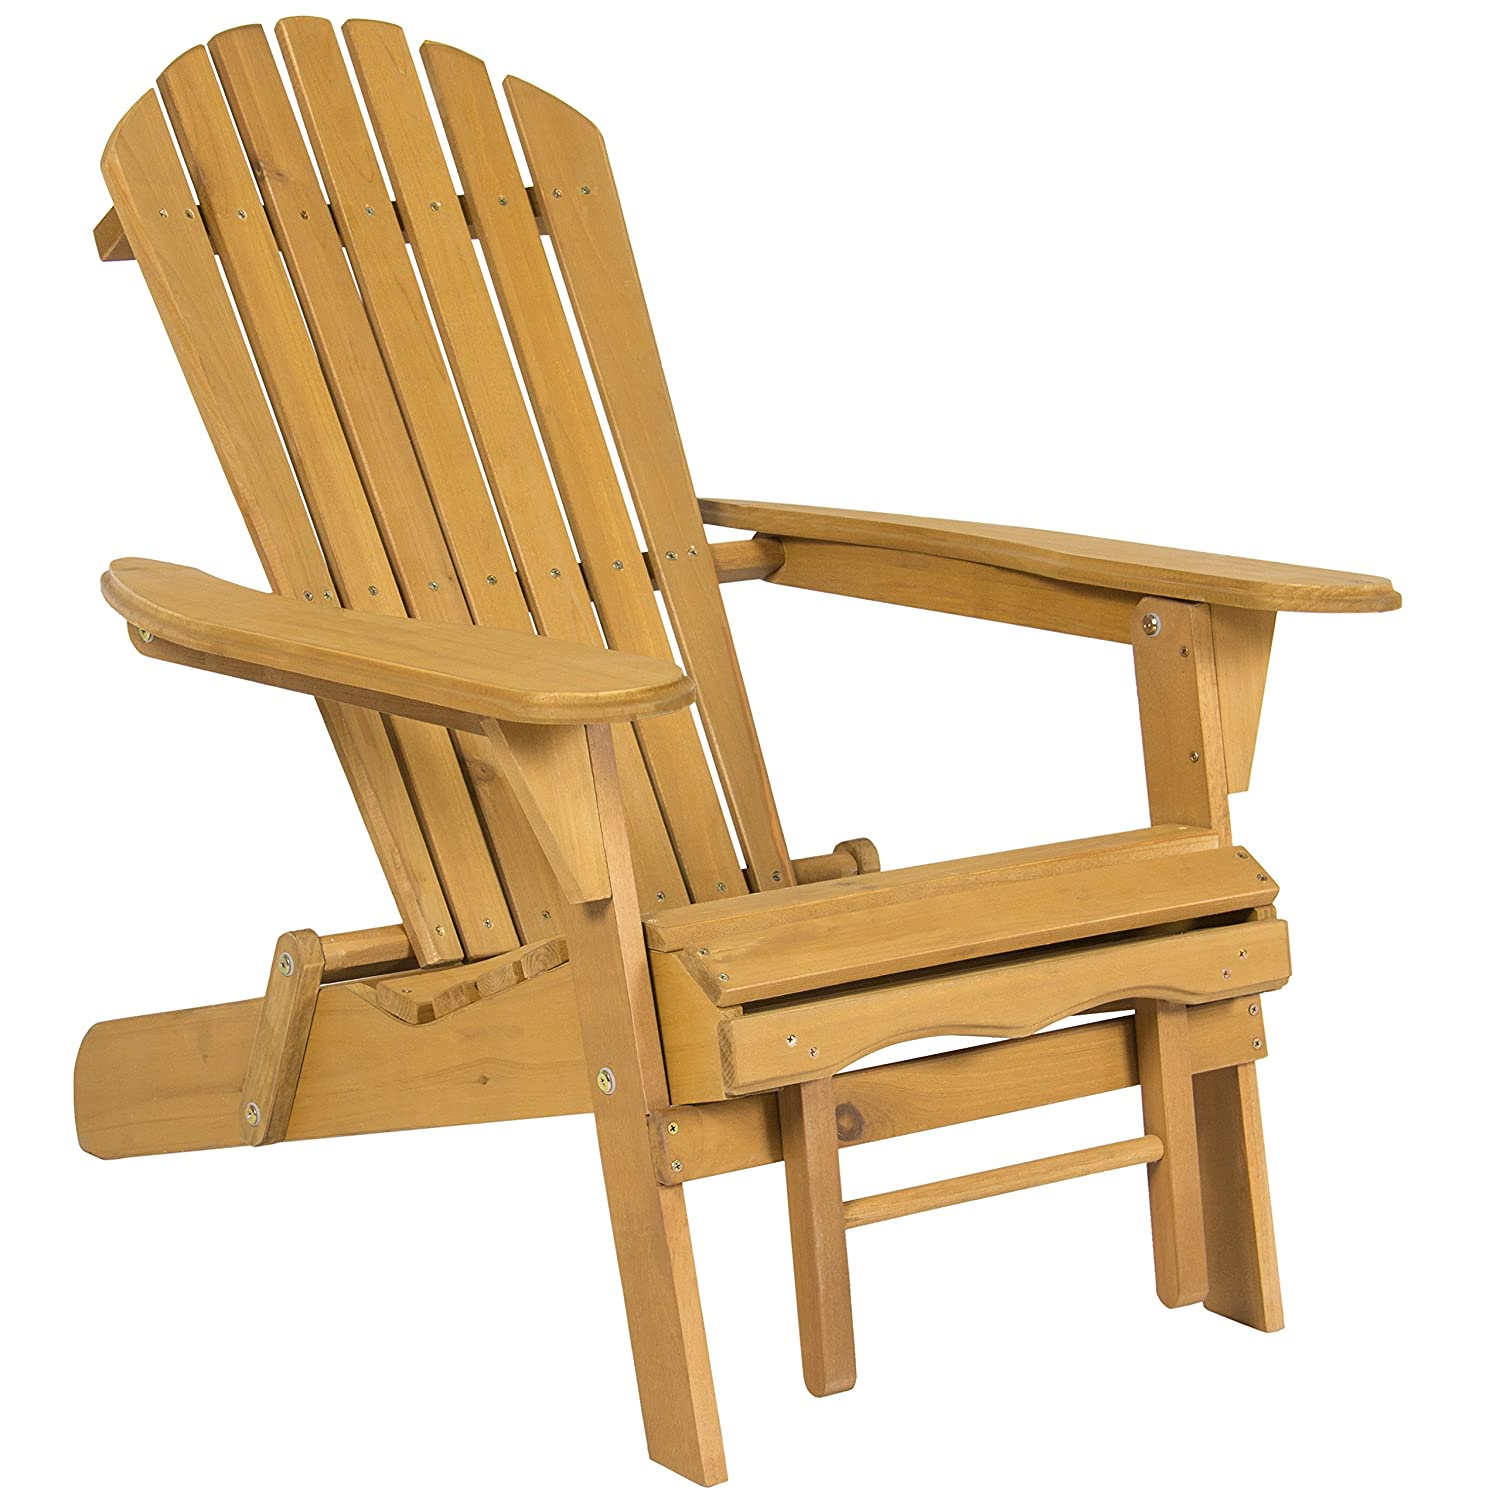 Amazon.com : Best Choice Products Outdoor Wood Adirondack Chair Foldable  W/Pull Out Ottoman Patio Deck Furniture : Garden U0026 Outdoor